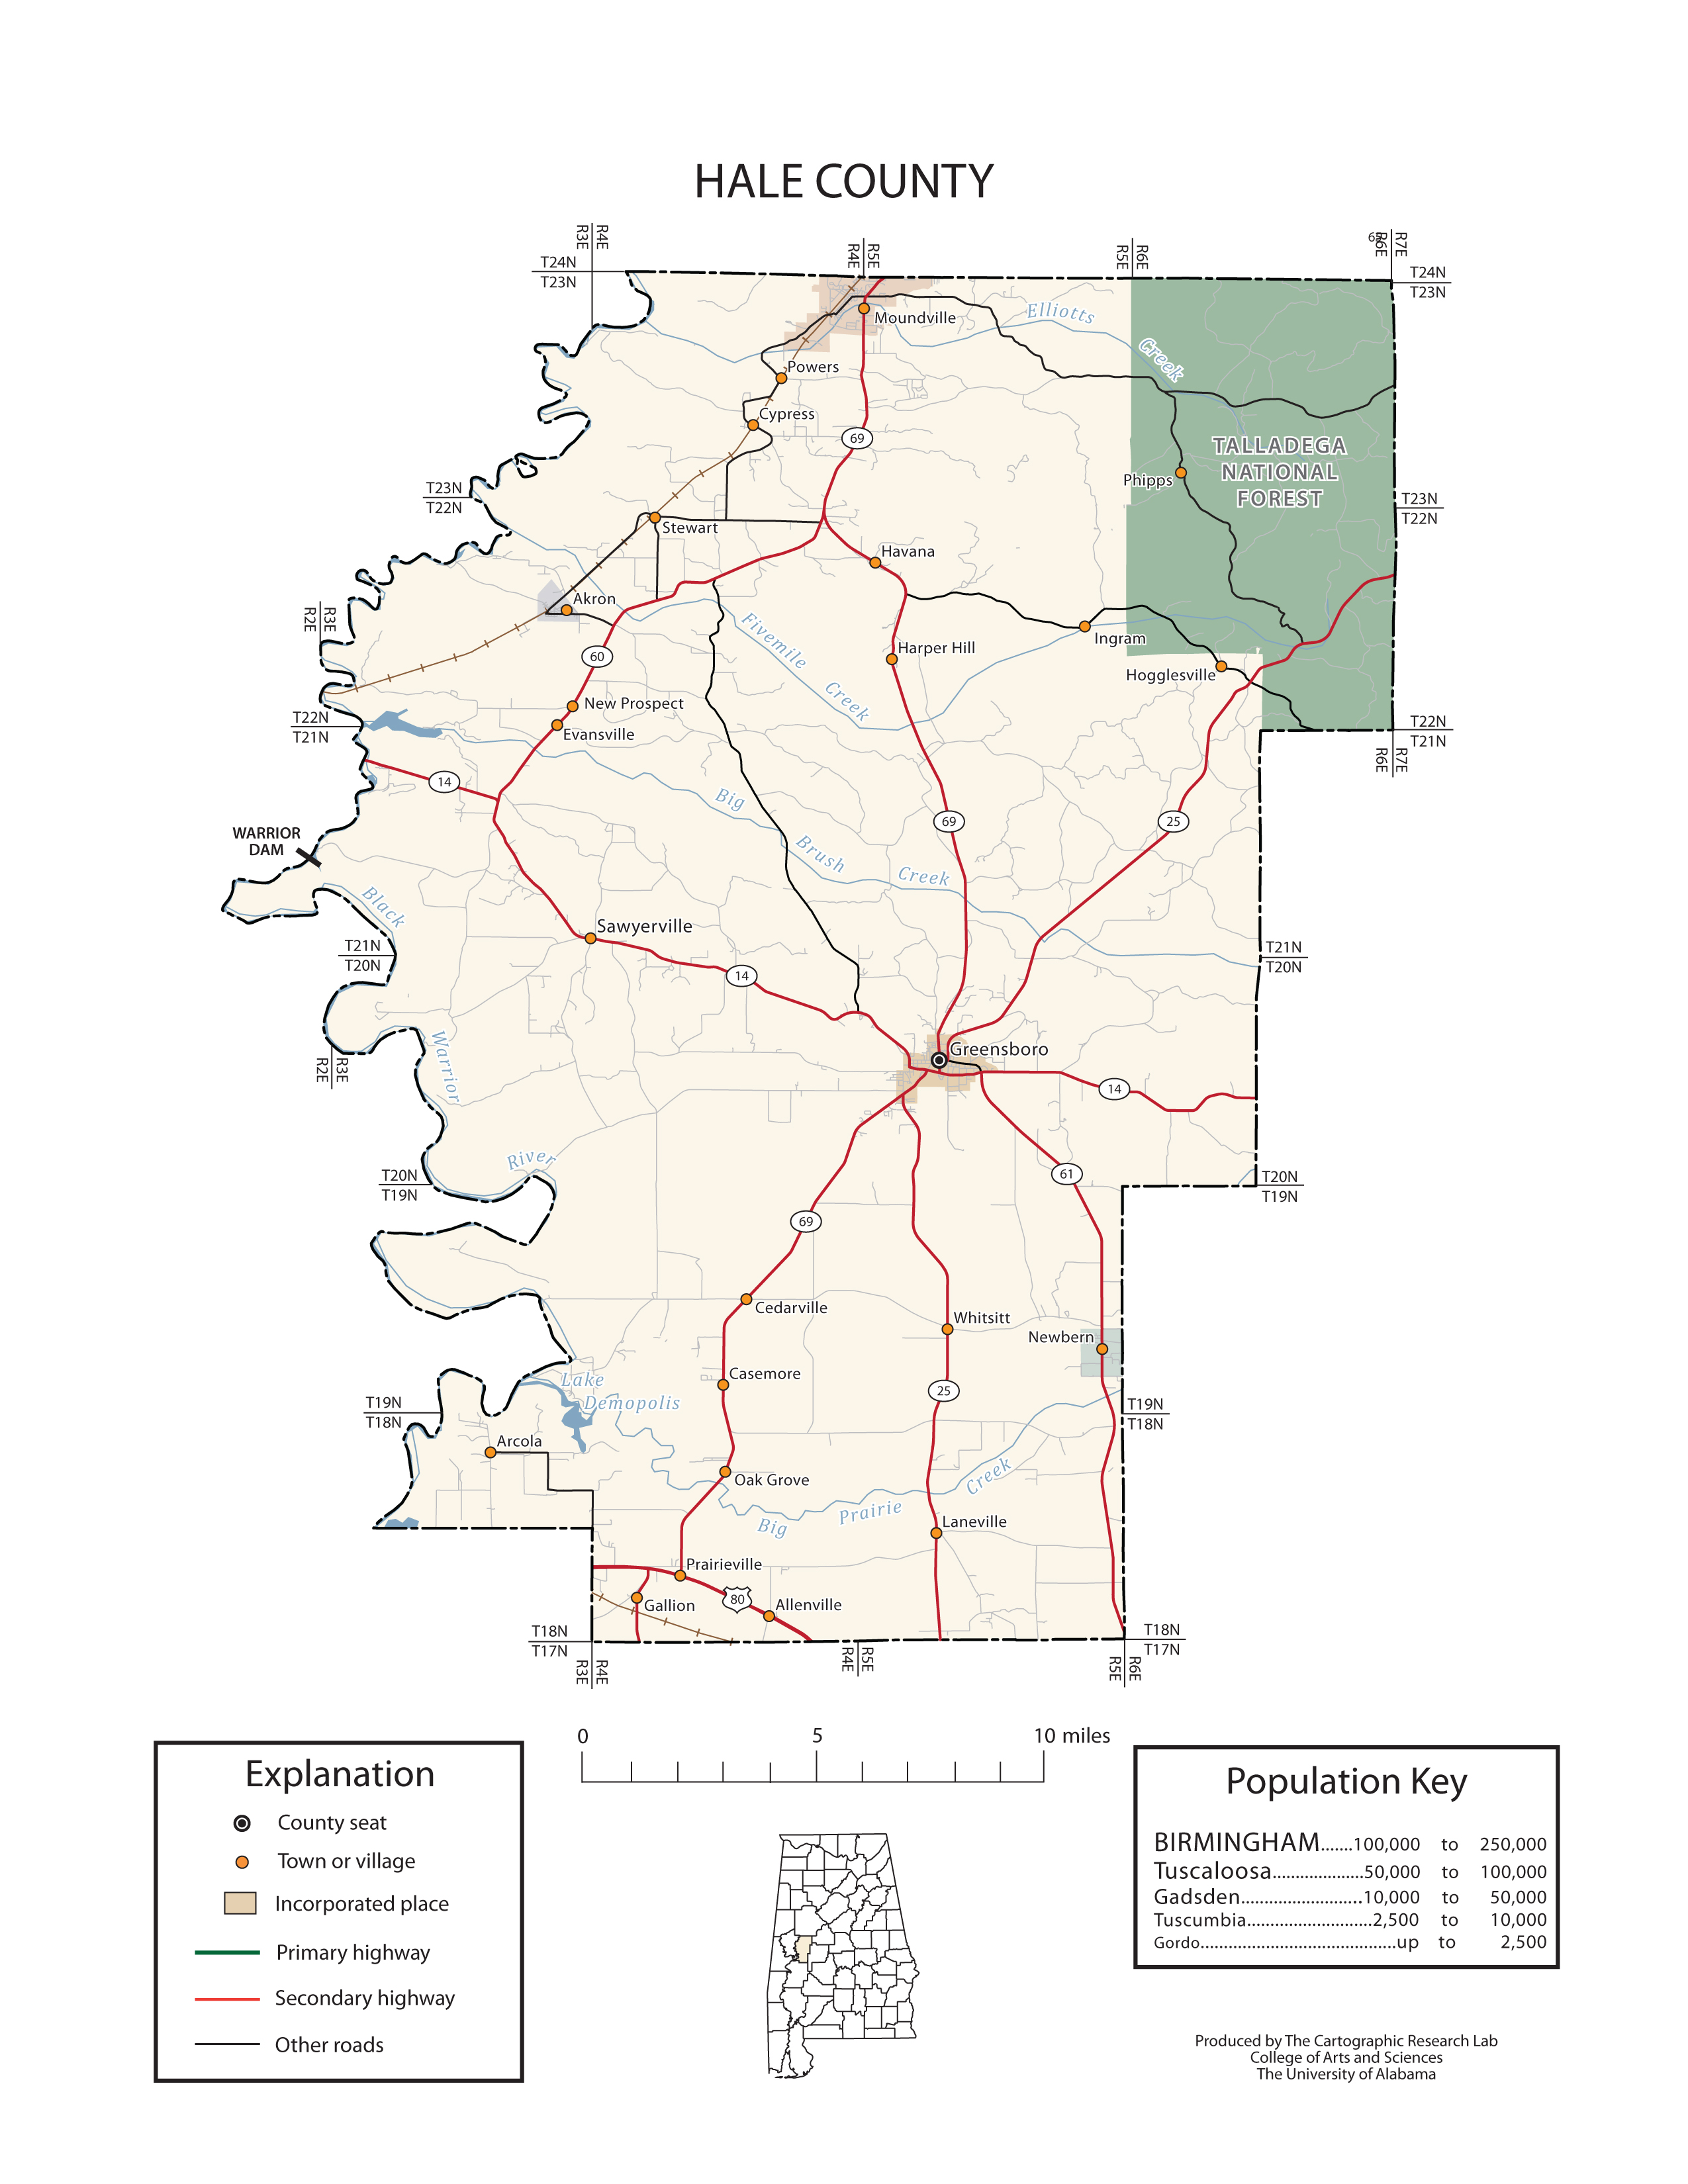 Maps of Hale County